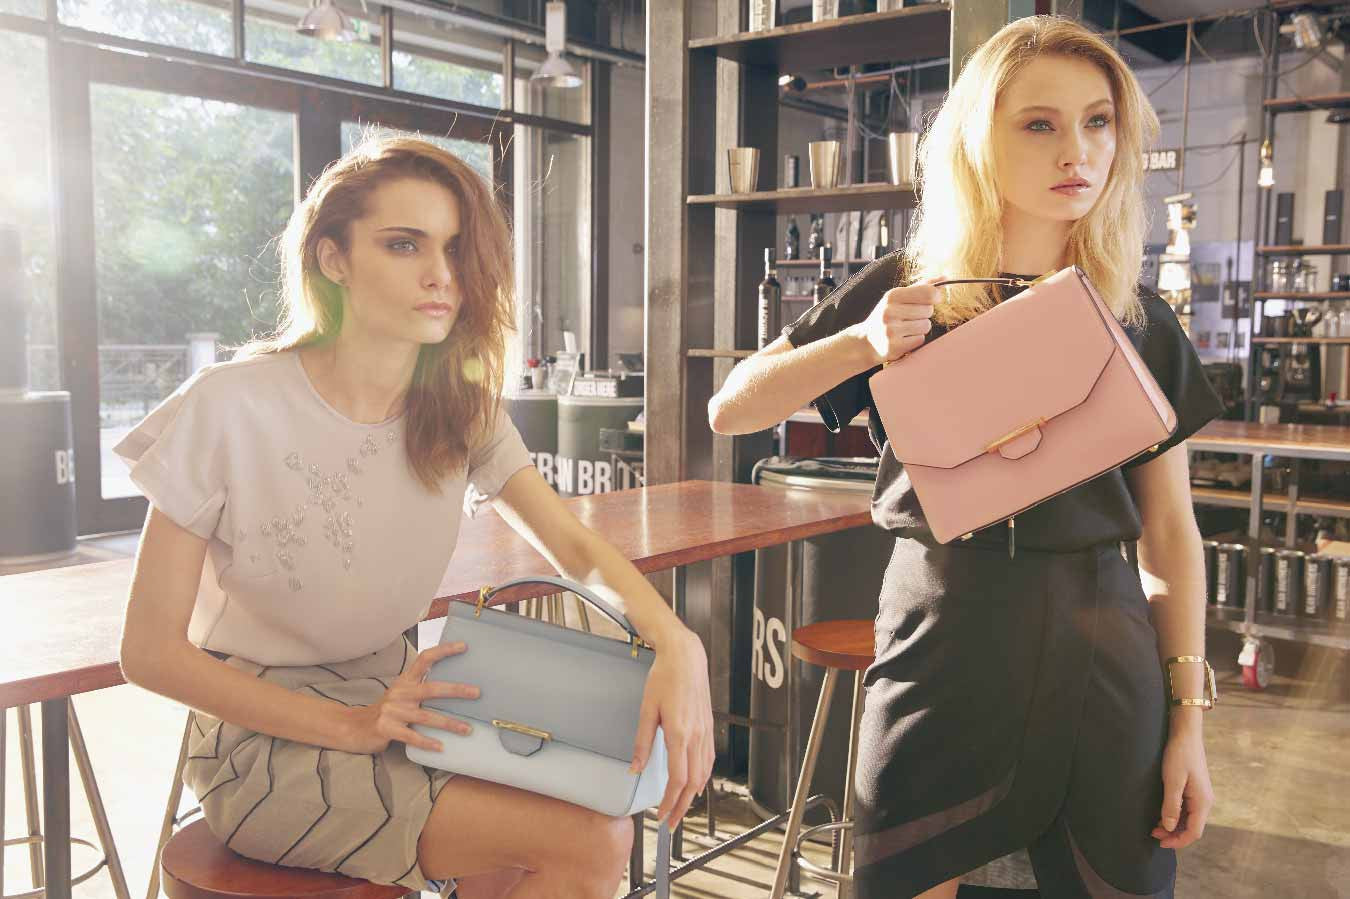 Image of stunning models carrying a luxury Divine two tone leather shoulder handbag in Dusty Blues and  classic style Vix Trapeze leather shoulder handbag in Dusty Pink. The Divine Two Tone is a breathtaking handbag with many features including a luxury collection of 22 karat gold plated hardware and beautiful line of custom made leather with a luscious feel to it. The handbag is designed with an A-framed with soft folds on both sides of the leather. This gives the handbag a softer and feminine appearance to the wearer. The Divine two tone can be tote with a slim top handle or sling around the shoulder for a more casual look, making it the perfect handbag to complete any look from day to evening. Crafted with a two tone custom dyed smooth full grain cow leather, the lighter blue leather is featured on the lower front and back of the handbag while the darker blue leather is featured on the top flap, top back facing, top handle and long shoulder strap. This cool and calming color combination creates a fresh and feminine styling to any outfit. It also evokes a sense of lightness and freedom to allow one to feel more confident in their choice of outfit. Each handbag is embellished with the iconic Revelry gold bar lock closure hardware for the added secure and functionality. It also features a unique dual function hardware with an added triangle shaped ring holder. Attached to the ring is a long strap with a detachable snap hook designed in a unique shape to clipped in with the ring. The top spine of the handbag is crafted with a solid foundation to withhold and strengthen the placement of the top handle hardware. Every piece of hardware is embossed with the iconic Revelry logo for a luxury finish.The feature on the interior part of the handbag includes the internal flap and facing of the handbag lined with a contrasting custom dyed light blue in smooth full grain cow leather. An iconic Revelry logo is embossed on the internal facing part of the handbag in luxury gold. Each handbag has a spacious compartment to store all your necessities and is lined in a luxury woven gold fabric. The inside compartment also features an internal back pocket to store smaller items and is lined with a luxury woven gold fabric and contrasting custom dyed light blue leather trimming. All handbags are displayed with a clean and neat stitching detailing finish. The Vix Trapeze is one of Revelry's luxury handbag that is an evergreen and versatile style to carry all year round, and transition form a day to night look. The handbag design is kept simple, clean and elegant with a luxury finish. This stunning handbag is meticulously crafted with high quality leather and delicately stitched together with high quality threading. All stitching details are finished clean and neat for a luxury high end look. Crafted in a beautiful Dusty Pink smooth full grain cow leather, this stunning leather type and color are carefully selected to achieve a classic and luxury finish. It has a mild sheen and soft finish with contrasting dark oil edging used throughout the handbag to allow the Dusty Pink to stand out. Known to be a popular trending color, it carries a gentle, compassionate, composed, reflective and lighthearted trait. Each handbag features a slim top handle and a detachable long strap that can be adjusted to a suited length. Whether you prefer to tote it or wear it across your shoulder, both looks are versatile for any occasion. The iconic Revelry gold bar hardware is embellished at the front flap of the handbag and is designed with an innovative lock closure for secured functionality. A smaller Revelry gold bar ring is also attached on both sides of the top handle with the Revelry's logo embossed on the inside of the bar. The bottom base of the handbag has a wide panel that supports the overall structure of the handbag with five rivets attached to the base to protect the bottom leather from dirt or scuff marks. Each individual rivet is embossed in the iconic Revelry logo around it. Every piece of hardware used on the Vix Trapeze are plated in 22 karat gold. The interior body of the Vix Trapeze features a spacious and versatile compartment area to carry a heap of necessities, e.g. wallet, mobile phone, iPad, makeup bag, pen, notebook and many more. It also comes with a wide back pocket to store smaller items such as card or receipts. The Internal flap, facing and pocket trimming of the handbag are all lined in smooth full grain cow leather while the rest of the internal compartment area are lined in high quality woven gold fabric. To purchase one of Australian luxury leather accessories, shop for Revelry online at www.revelry-rvly.com.